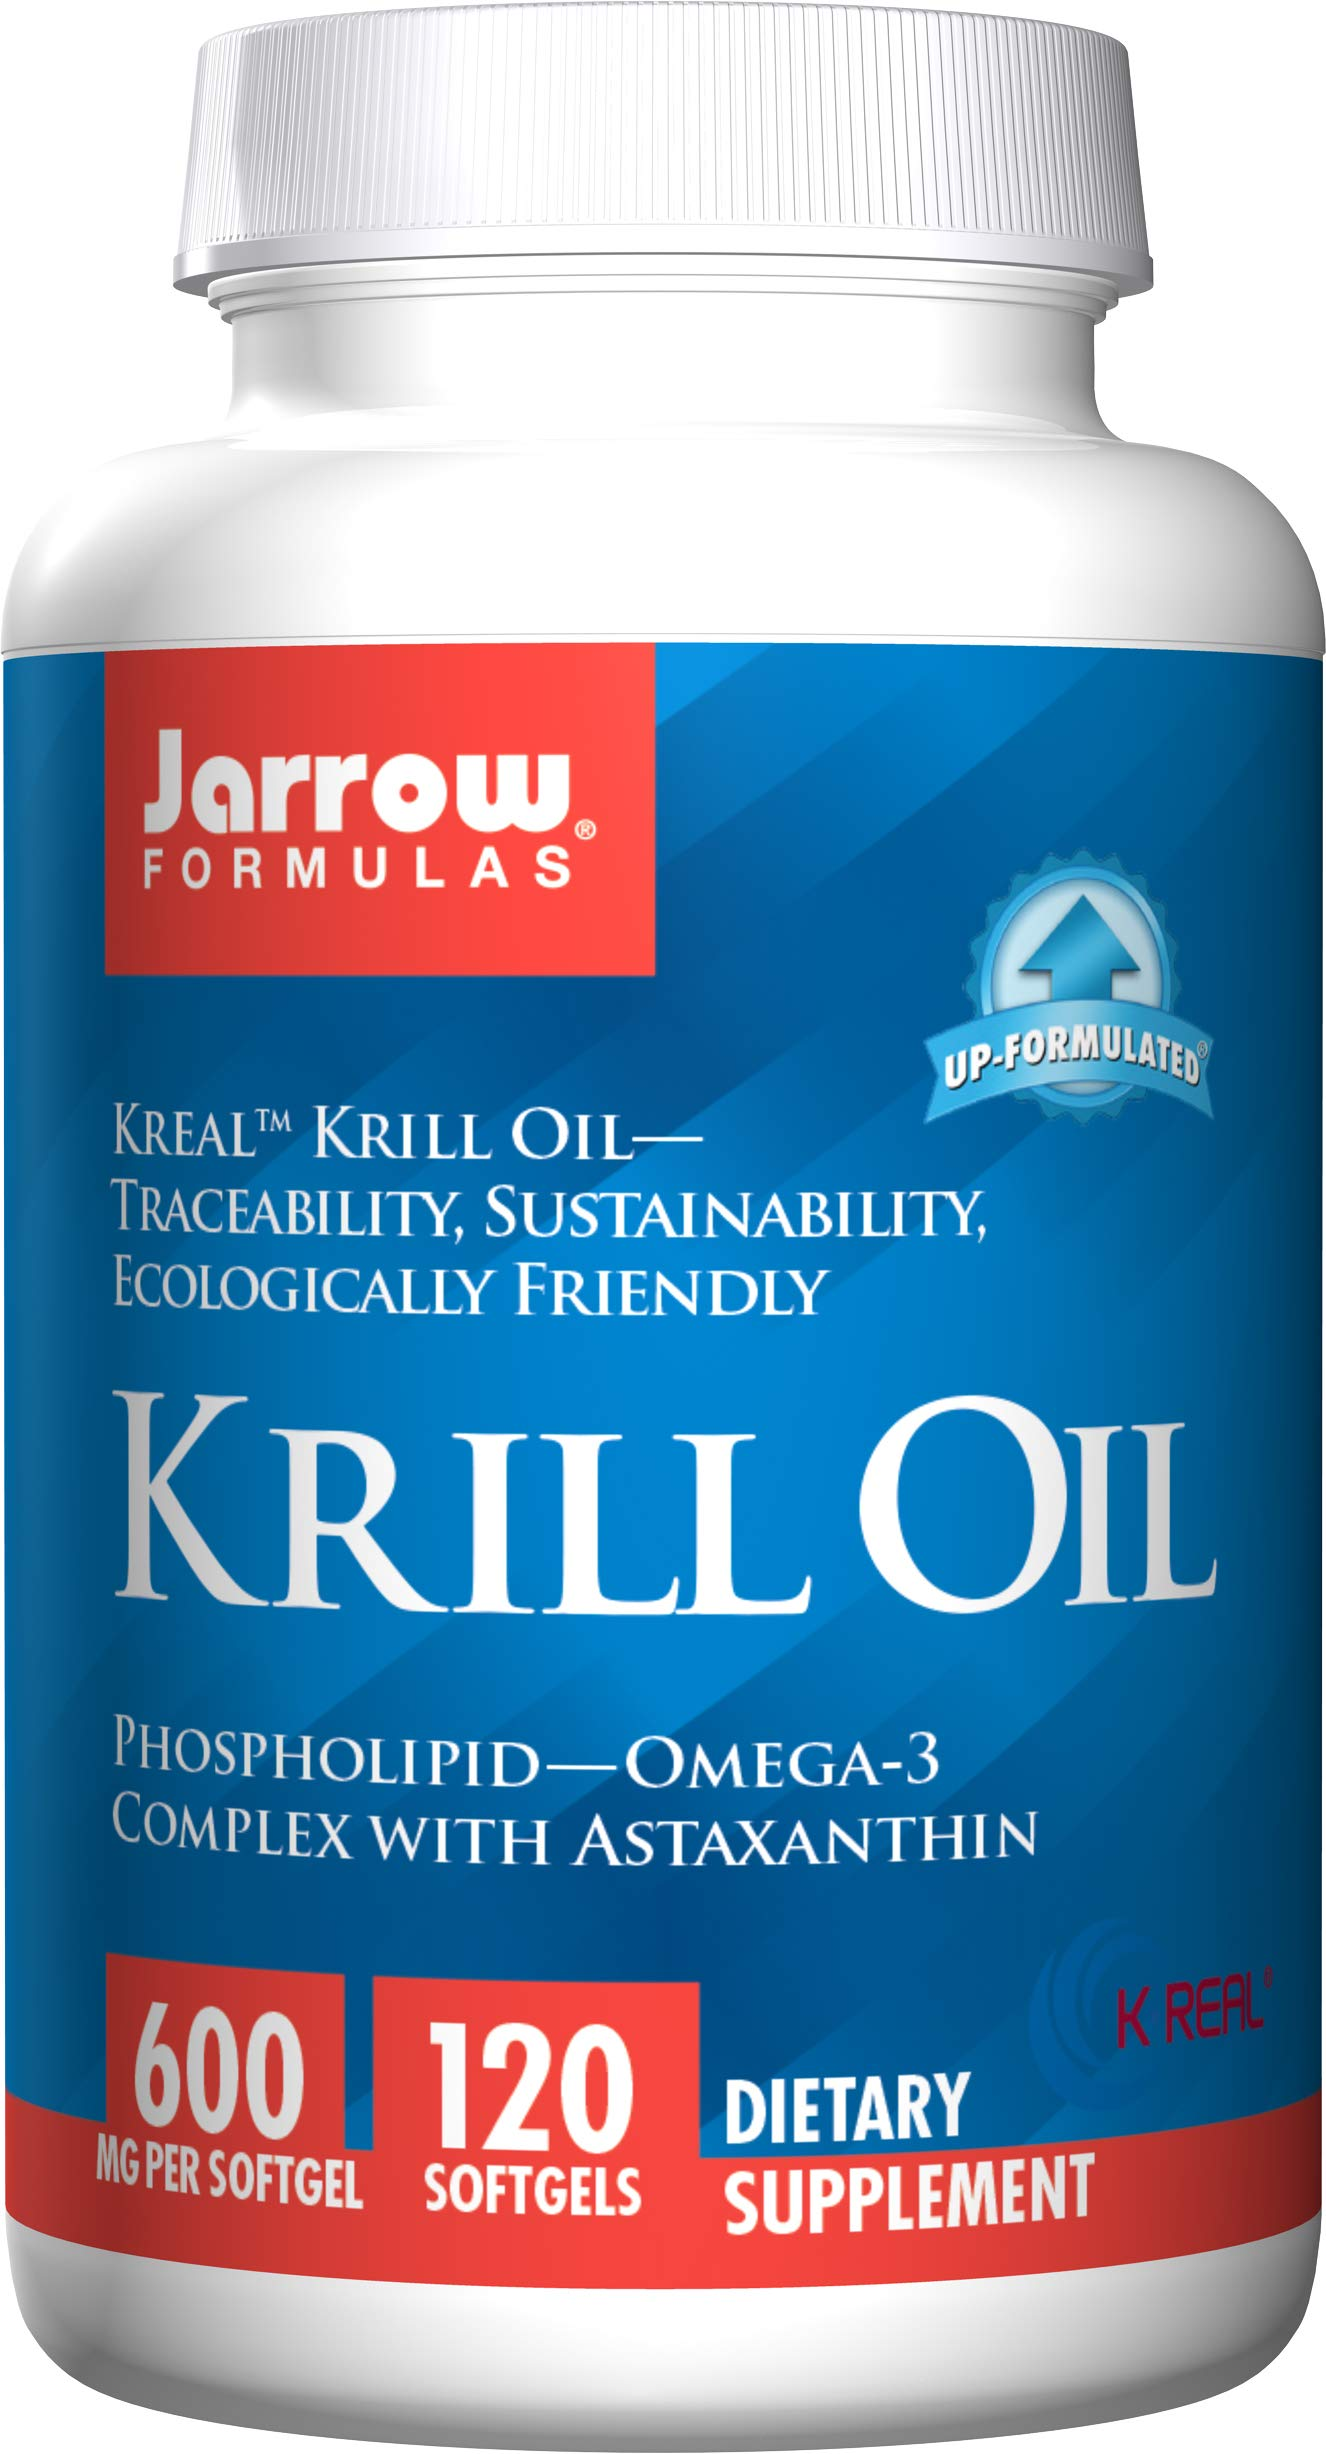 Jarrow Formulas Krill Oil with Phospholipid-Omega-3 Astaxanthin, Supports Healthy Brain Function Metabolic Health, 600 mg per Softgel, 120 Count by Jarrow Formulas